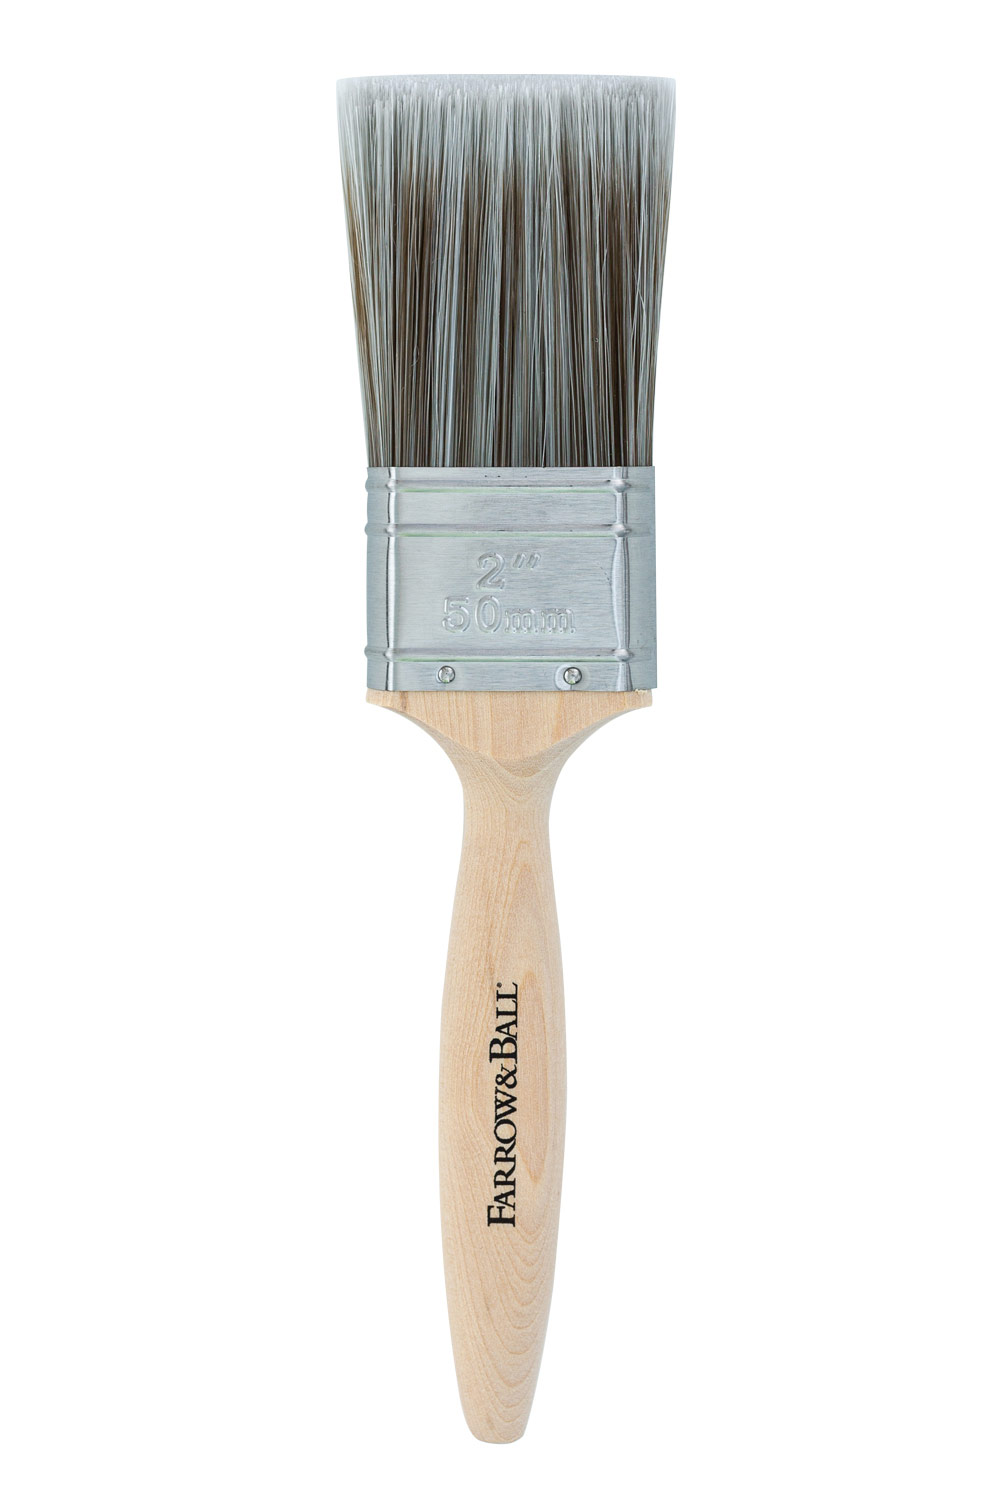 2 Inch Paint Brush $17.00  Order Now